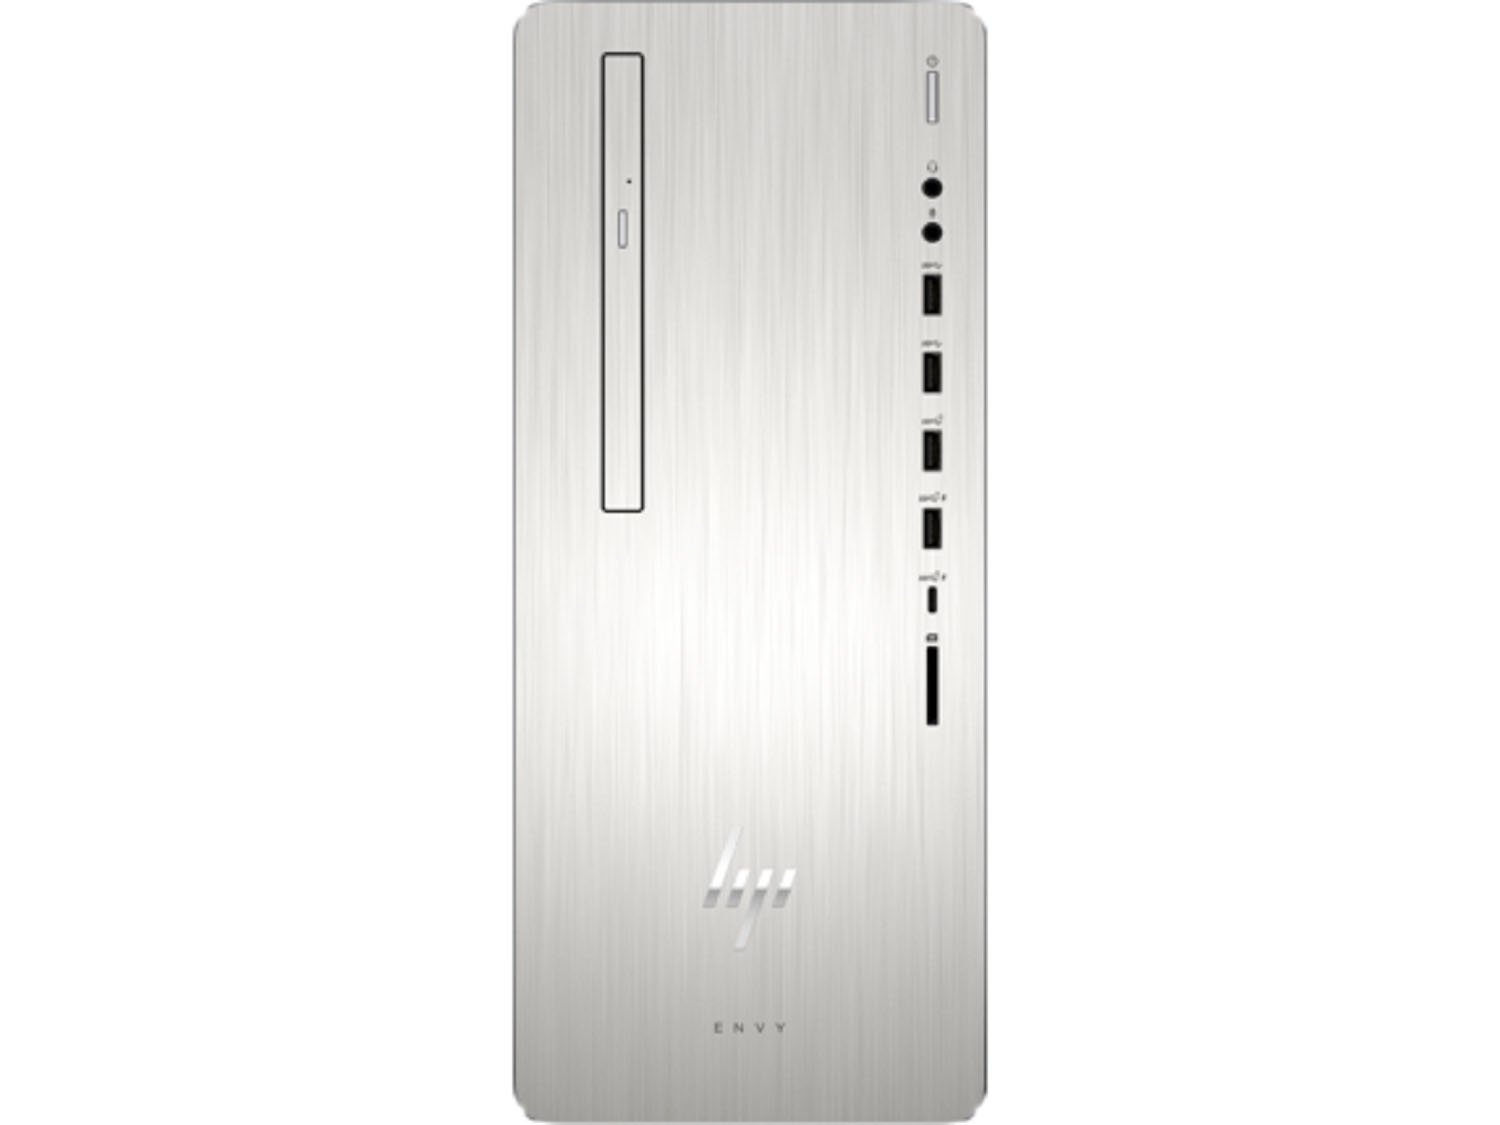 HP Envy 795qd Premium Desktop Workstation PC (Intel 8th Gen Coffee Lake  i7-8700 6-core, 64GB RAM, 1TB HDD + 256GB SSD, WiFi, Bluetooth, DVD-Writer,